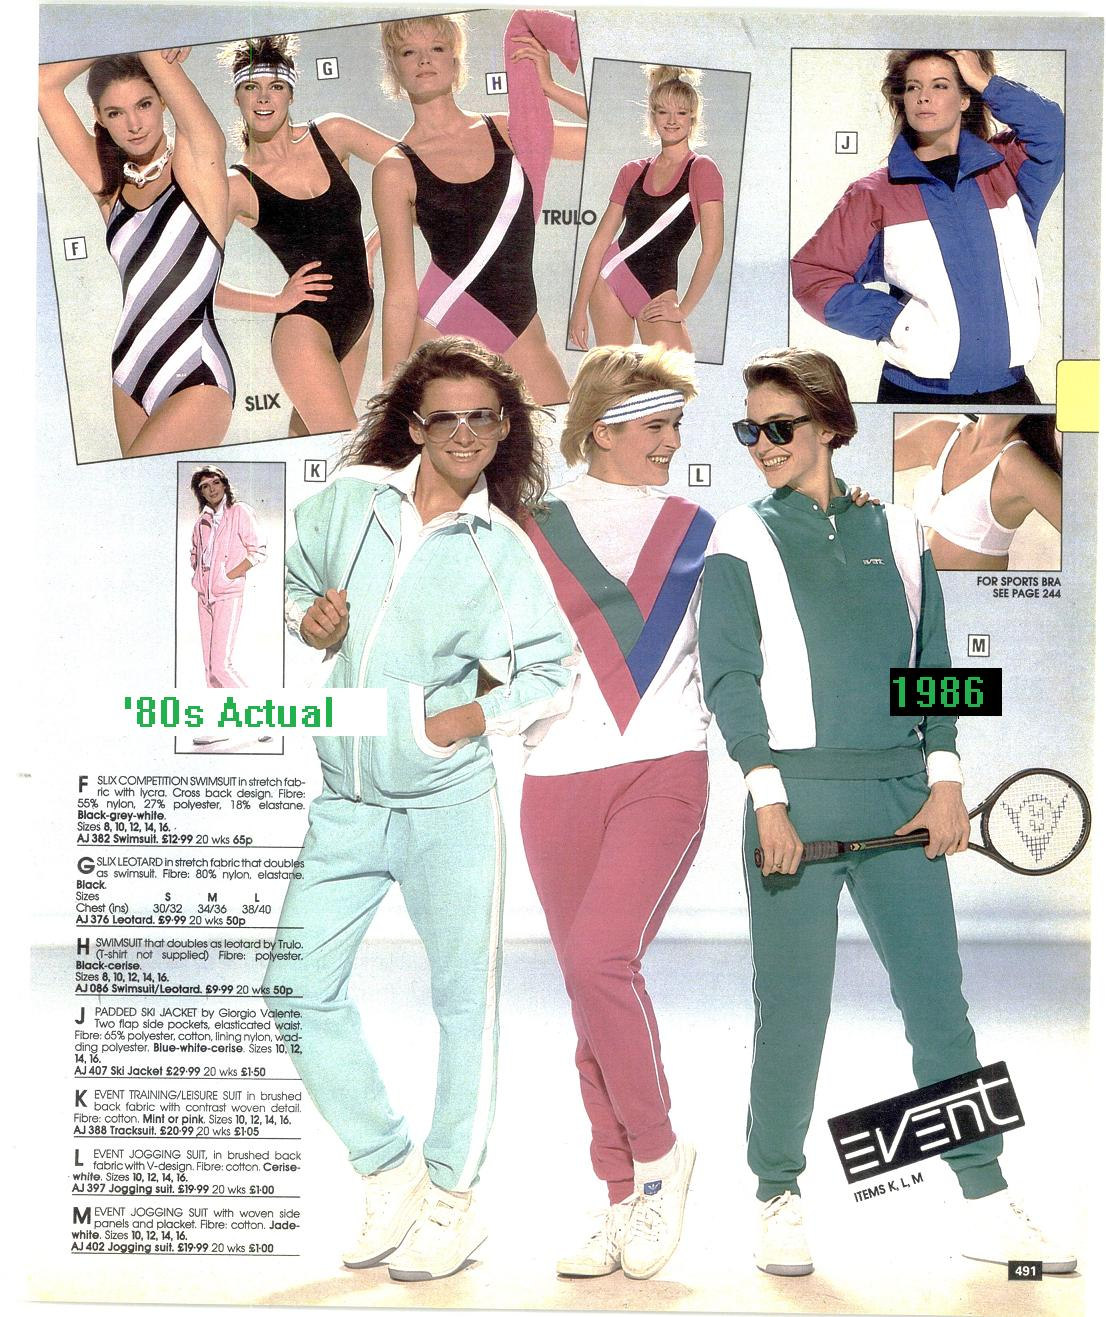 39 80s Actual 1980s Fashions Suitable Trends For Today